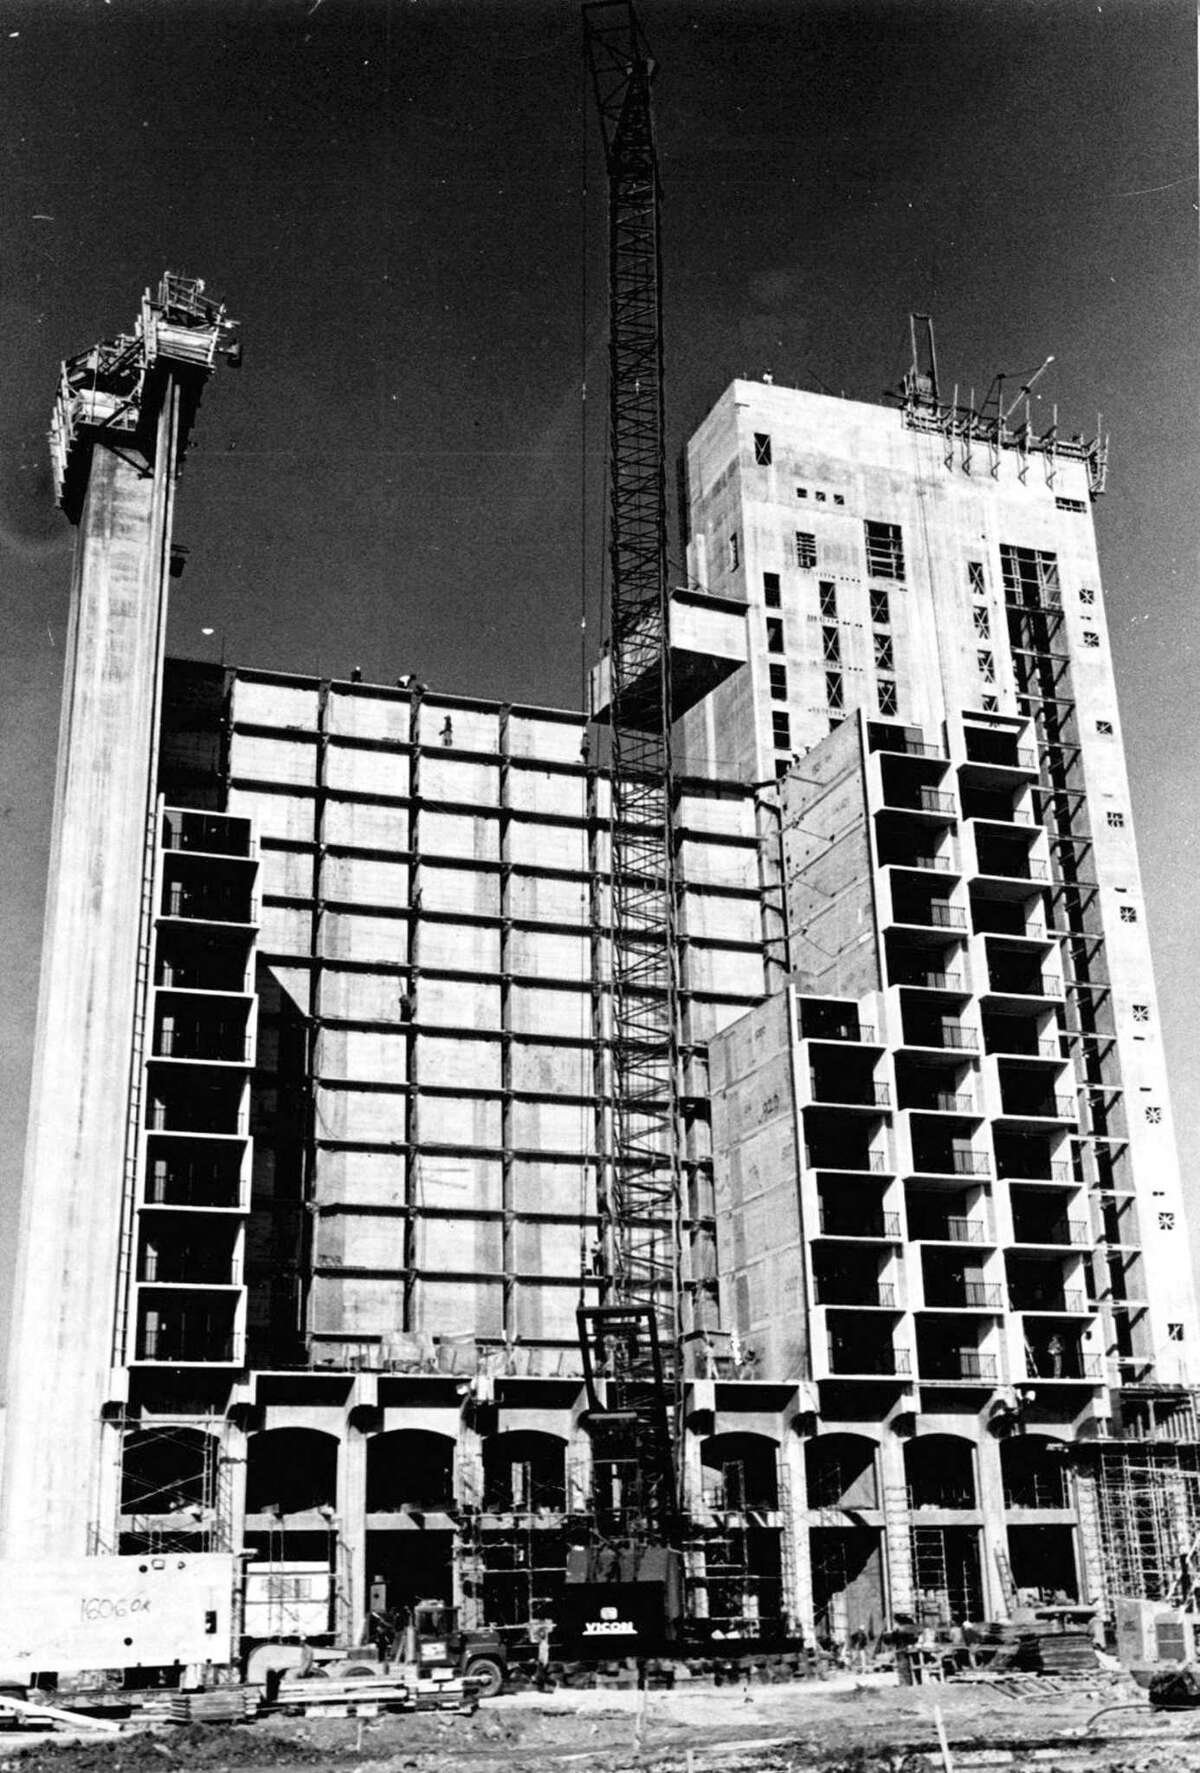 Construction at the Hilton Palacio del Rio was begun in July 1967 and finished in March 1968.